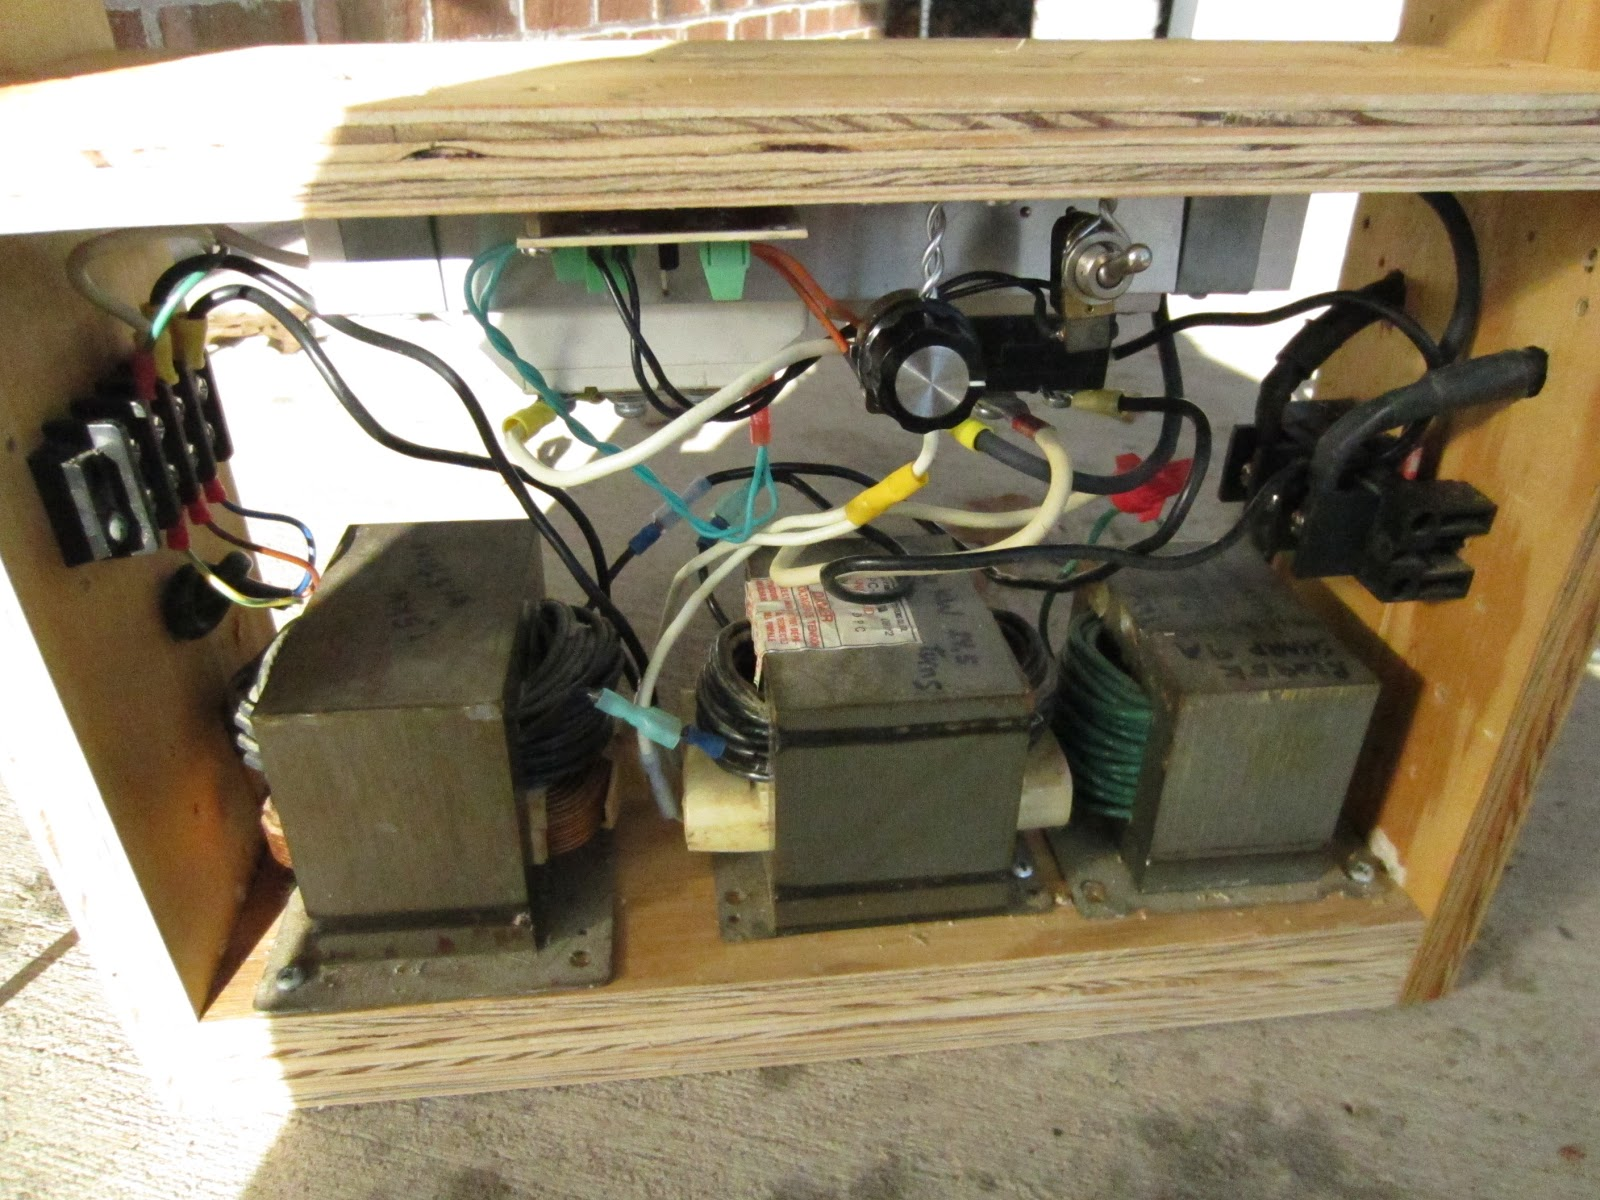 DIY 110 V Portable Arc Welder - with DC!